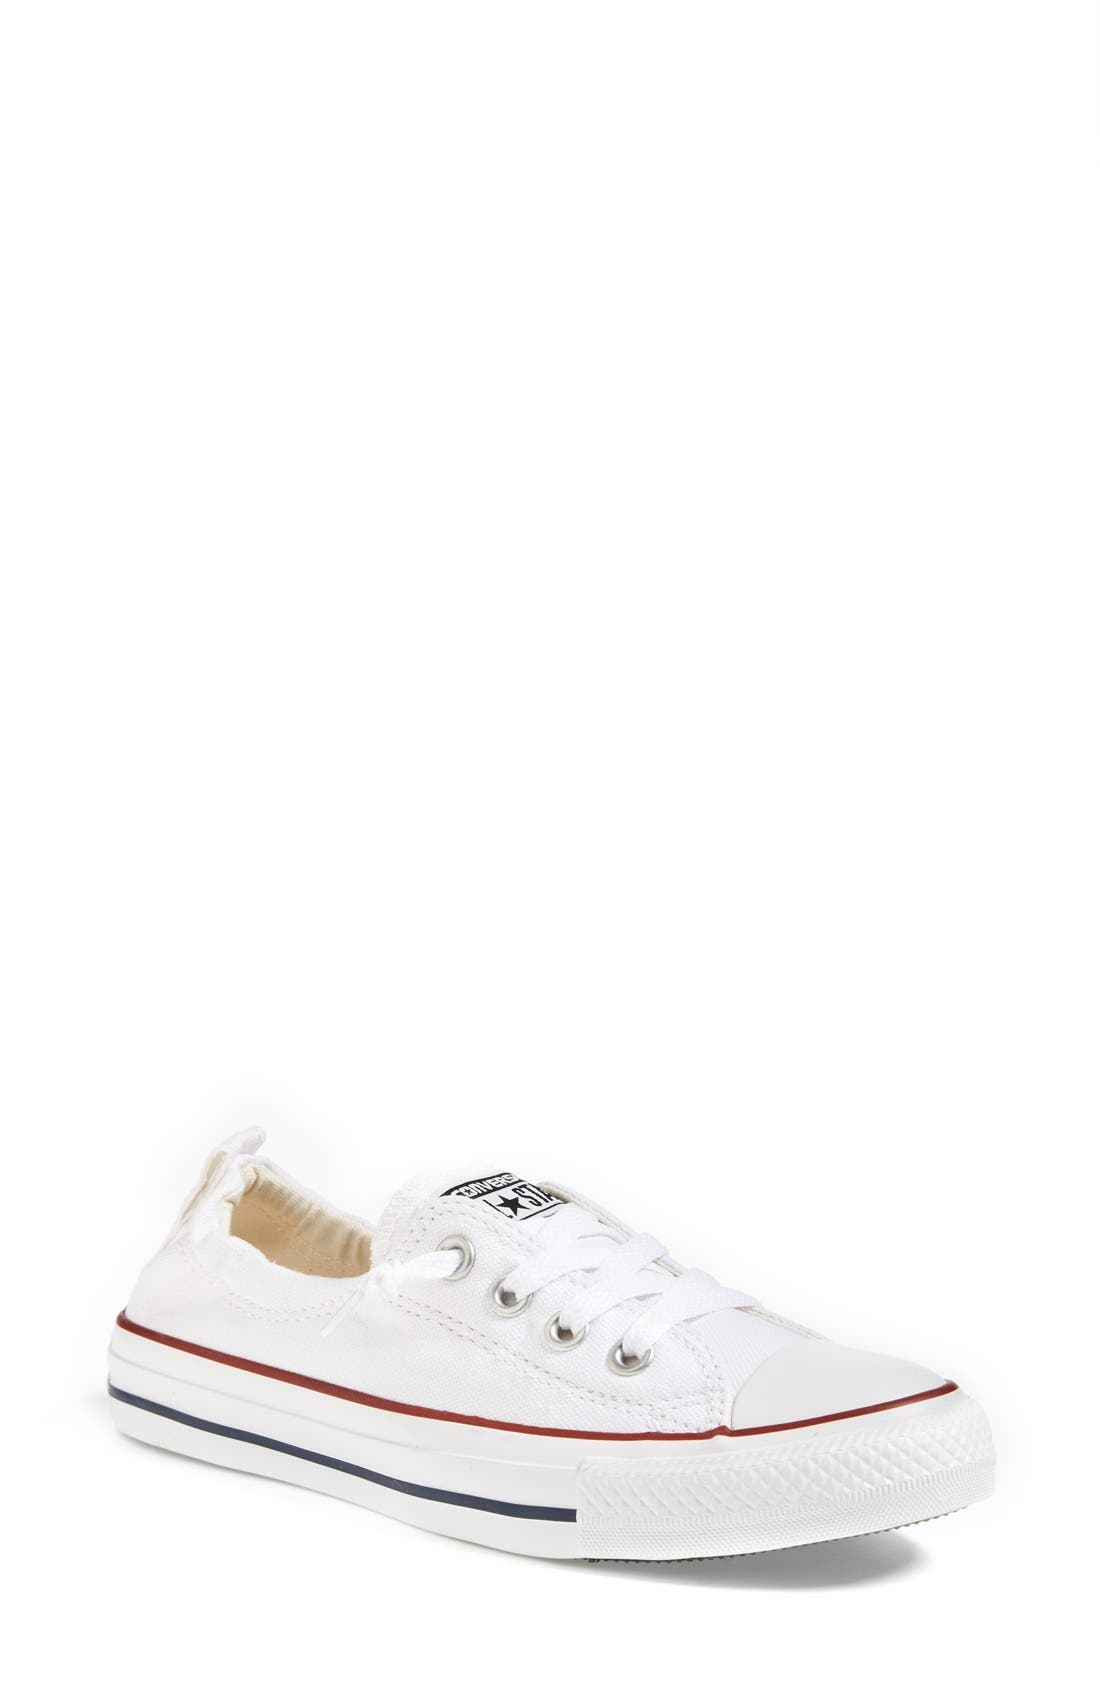 Chuck Taylor<sup>®</sup> 'Shoreline' Sneaker,                             Main thumbnail 1, color,                             White